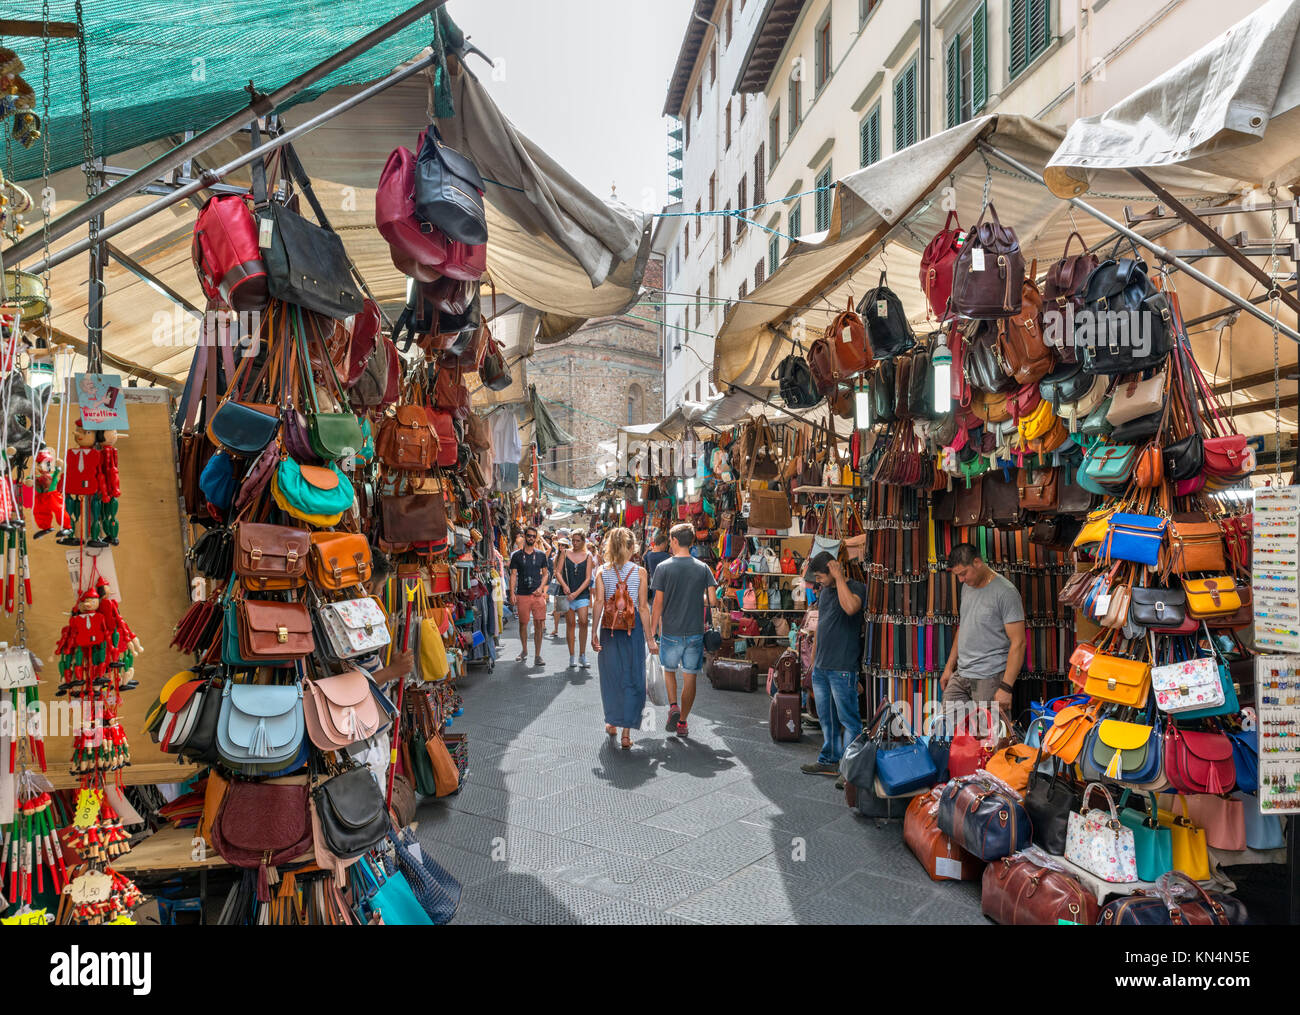 Via dell'Ariento in San Lorenzo Market area (Mercato di San Lorenzo), Florence, Italy. Stock Photo